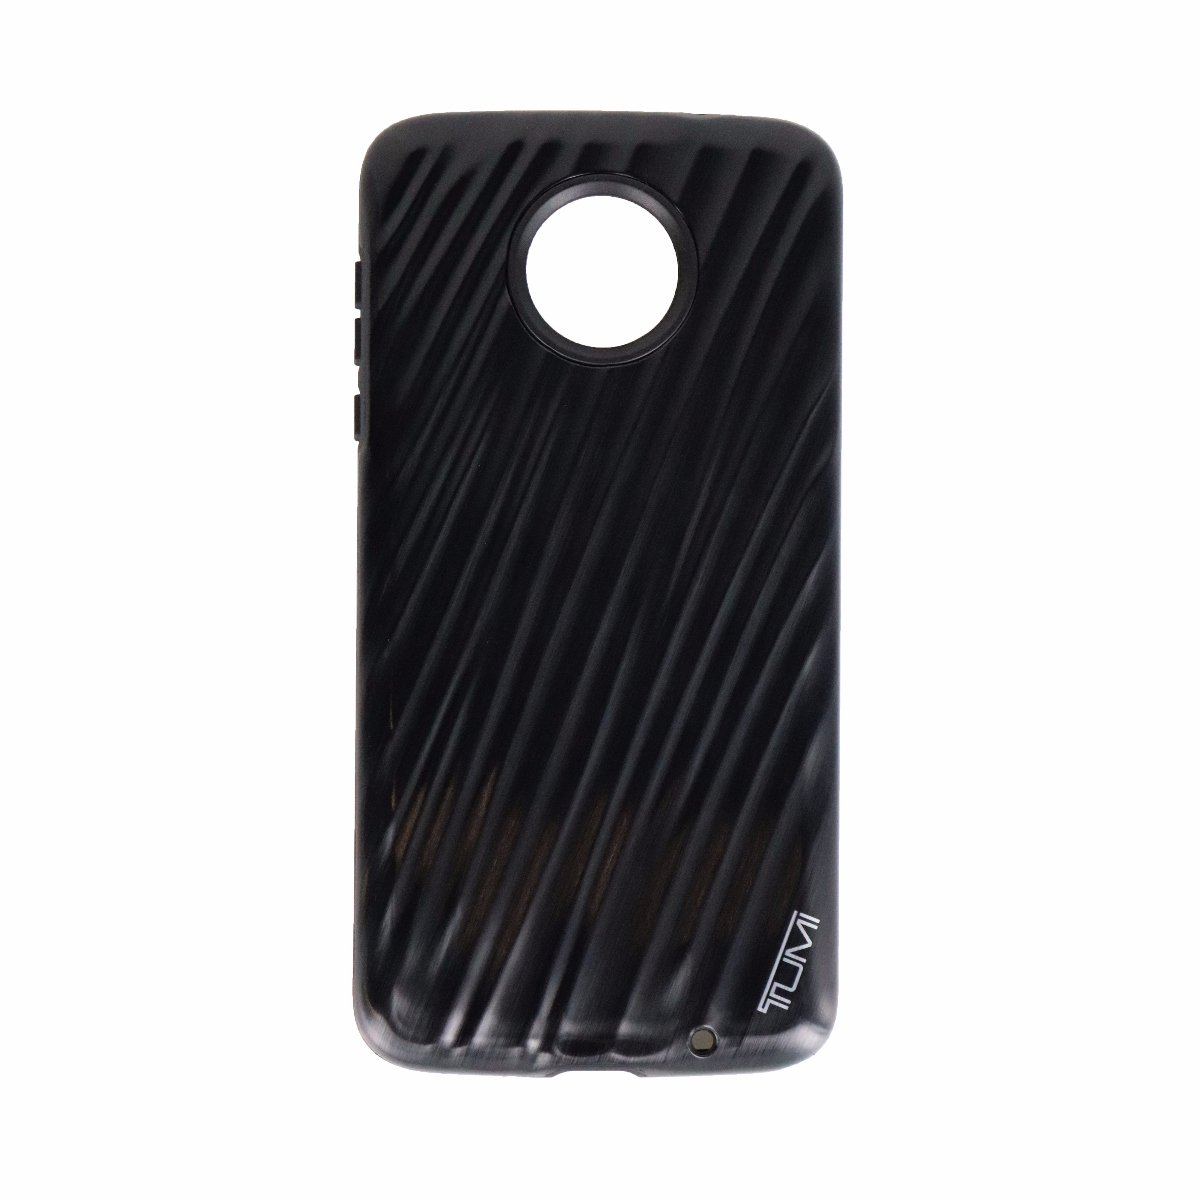 Tumi 19 Degree Series Hybrid Case Cover for Motorola Moto Z2 Force - Black (Refurbished)